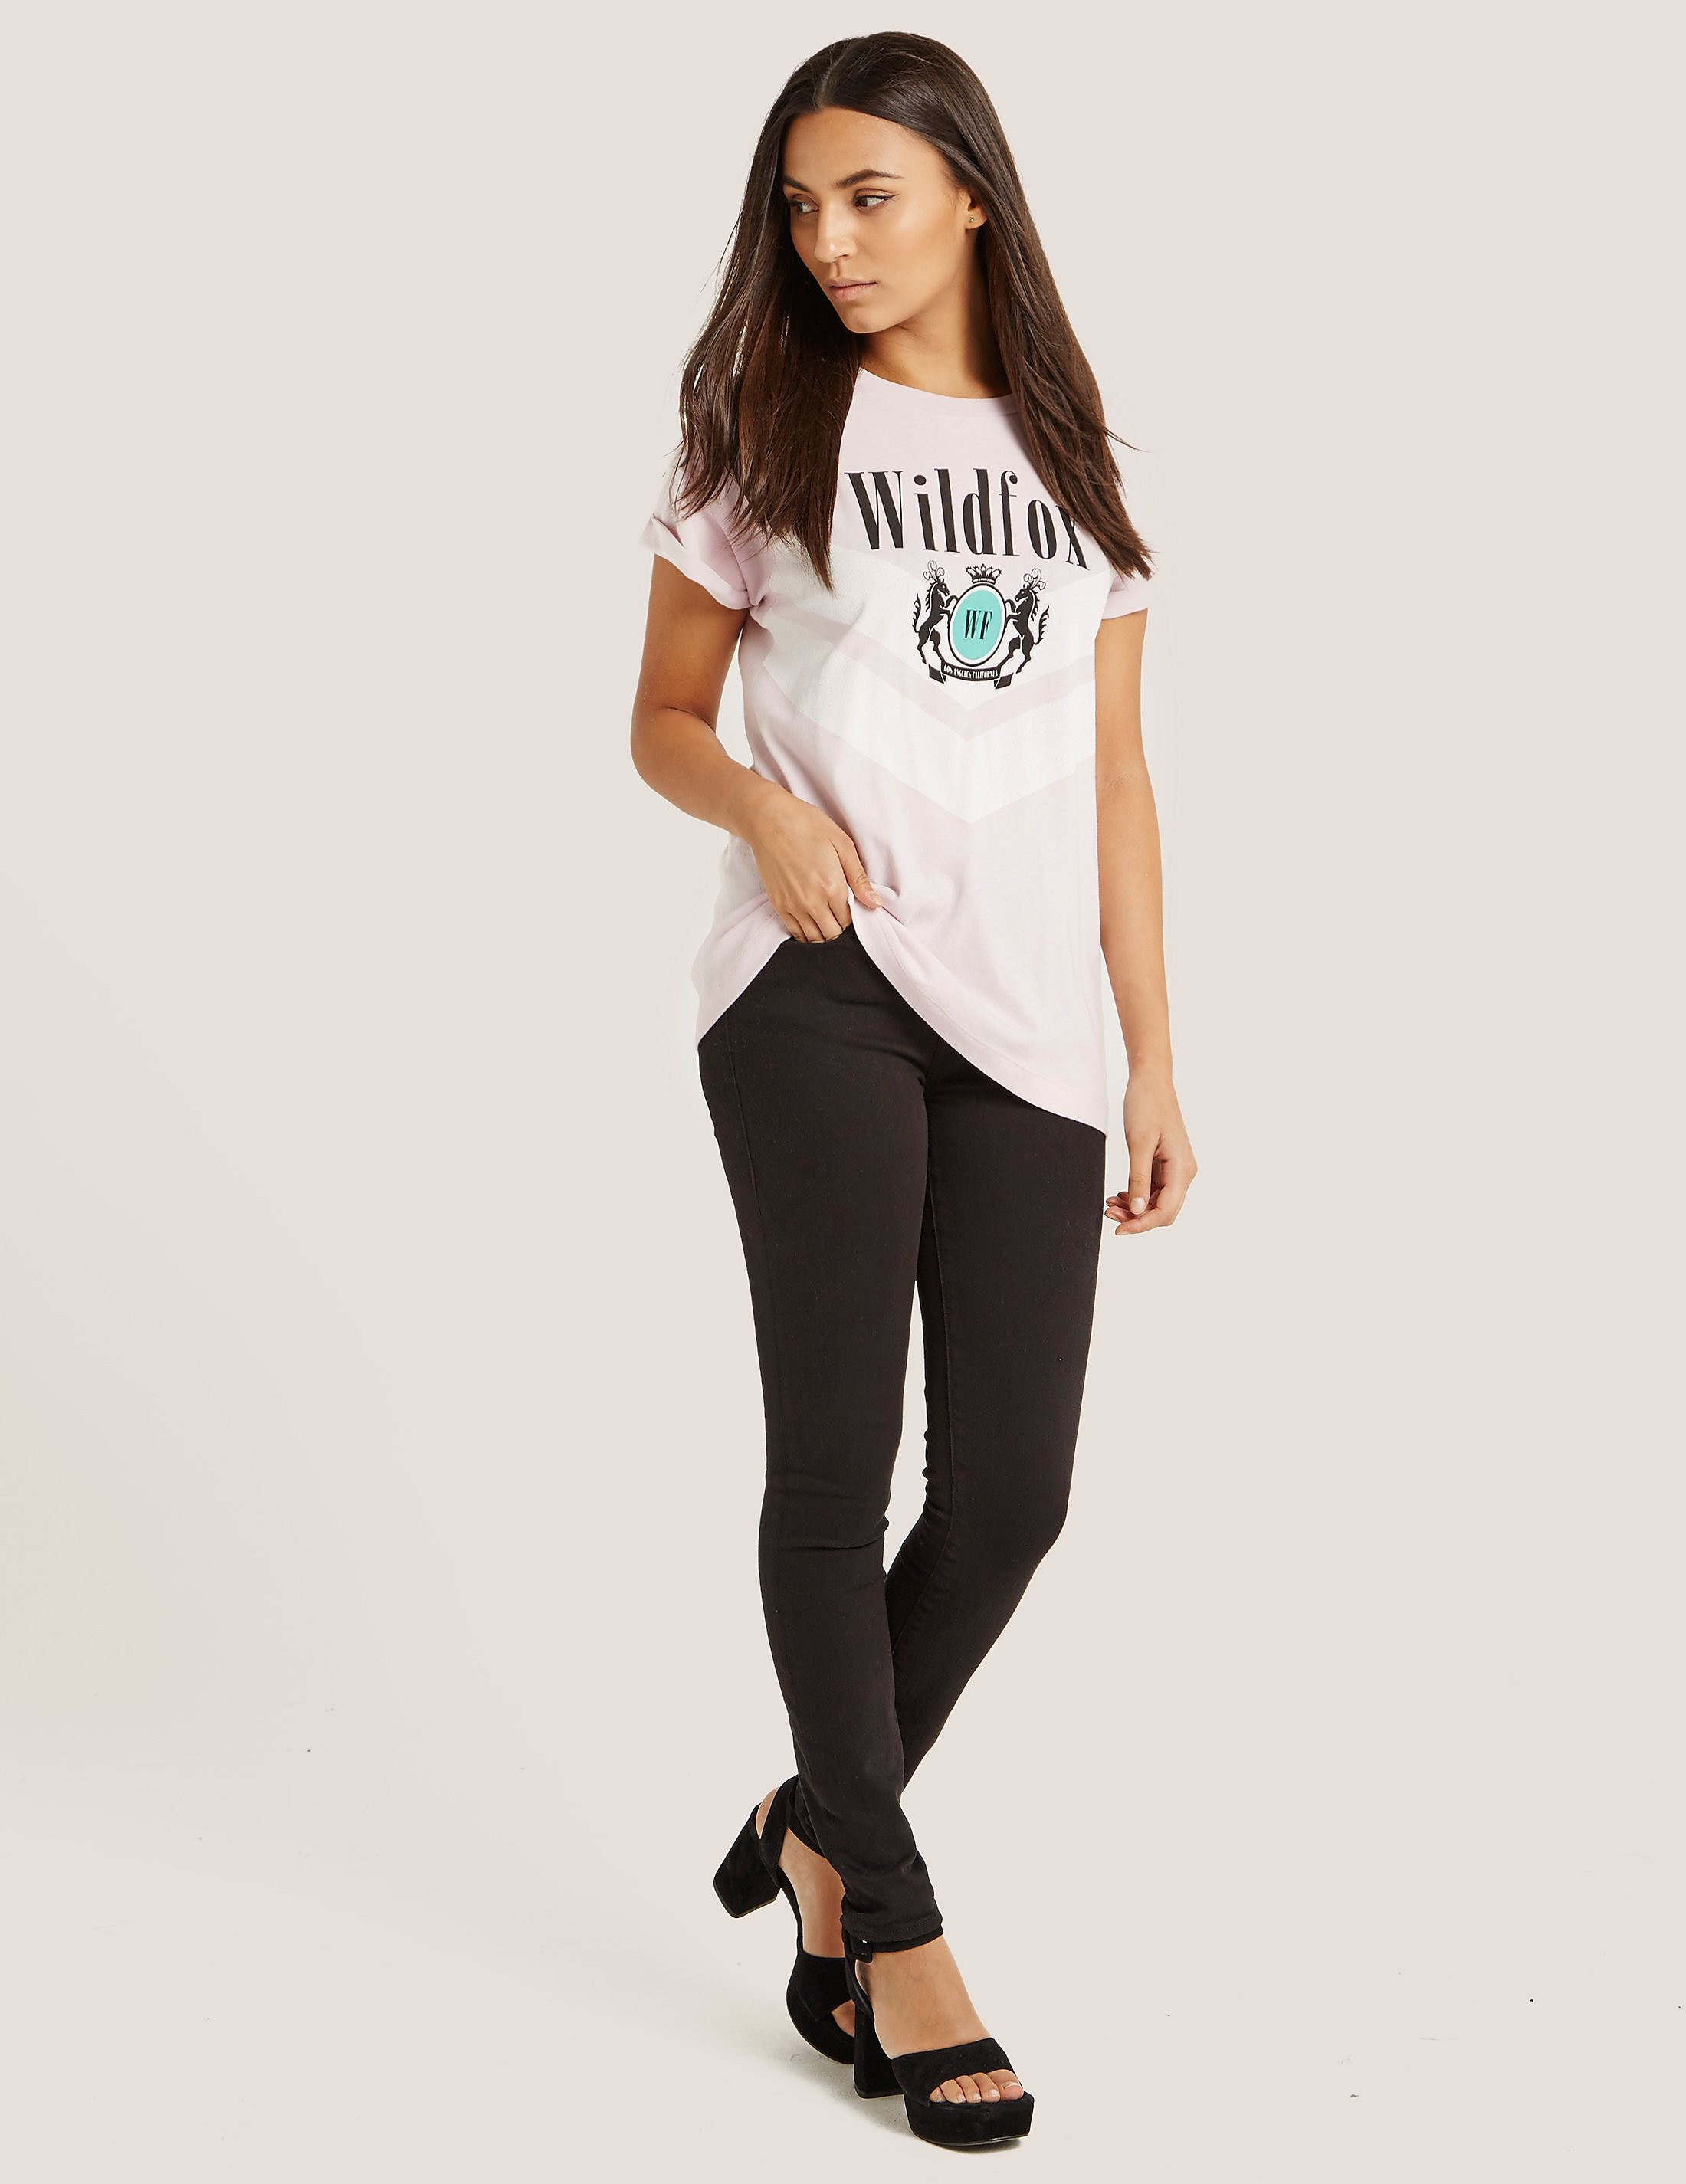 Wildfox Academy Heights Crew T-Shirt